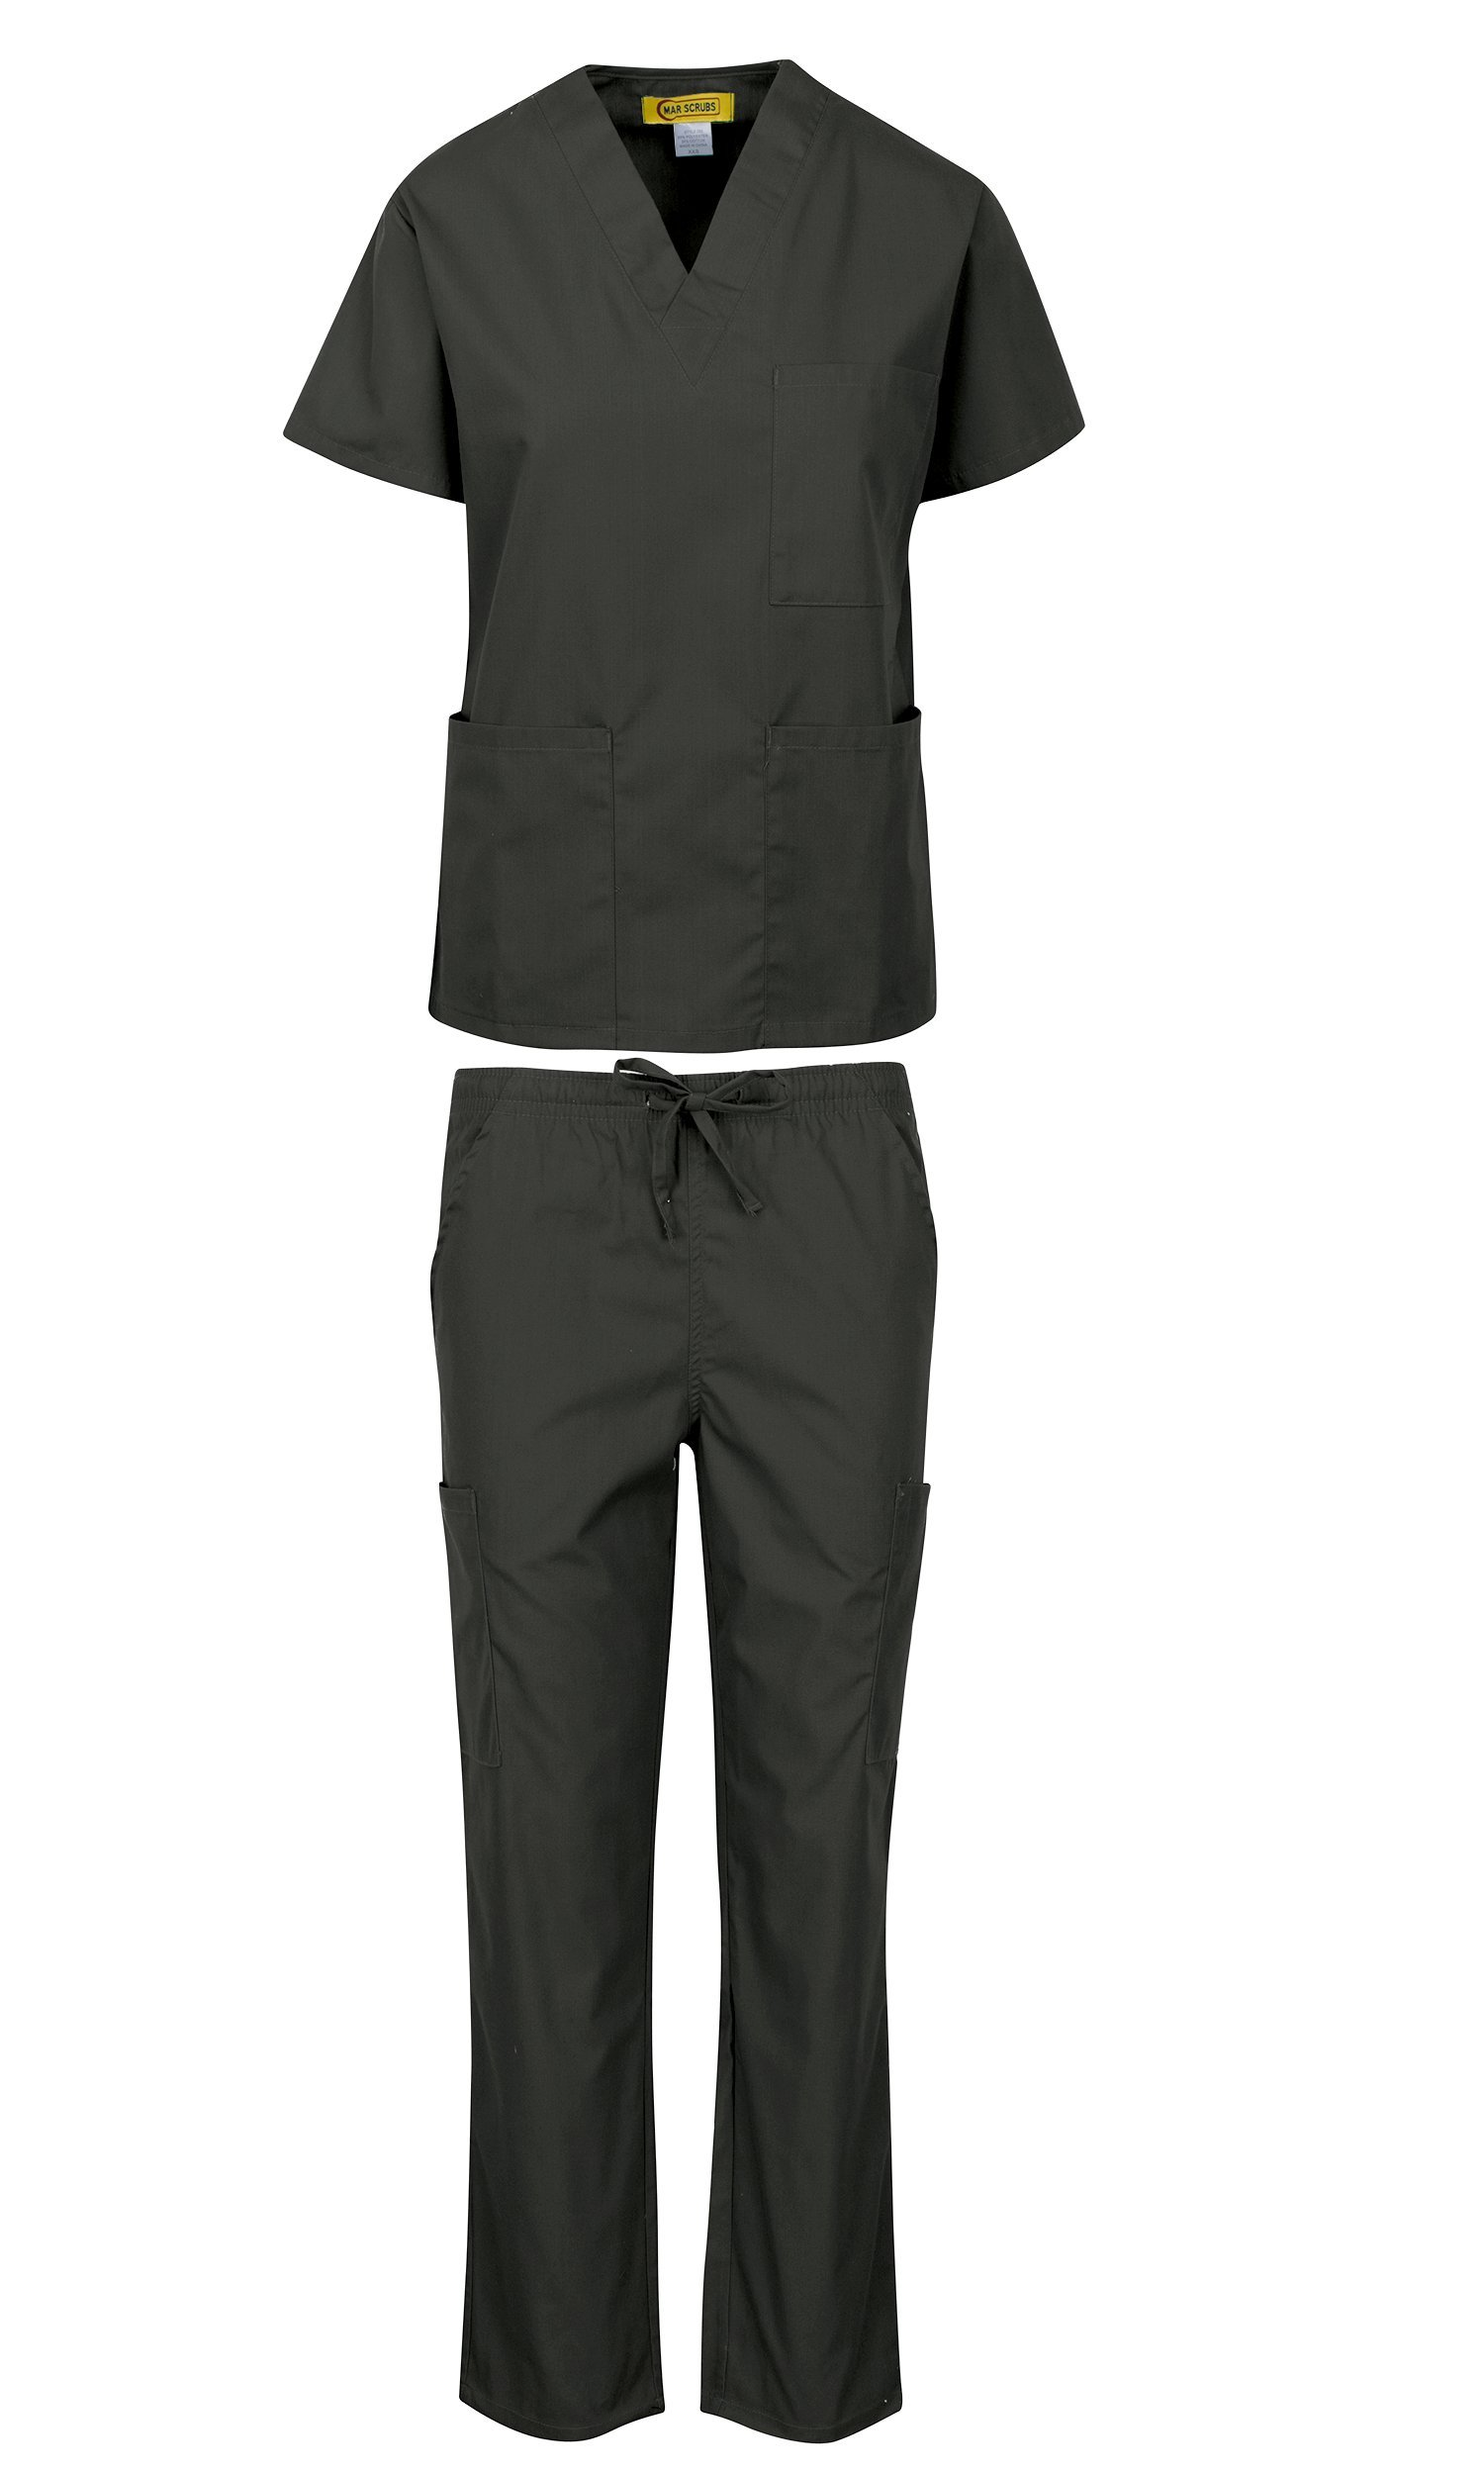 MAR SCRUBS Medical Uniform Women and Man Medical Scrubs Sets Top and Pants Dark Grey-S